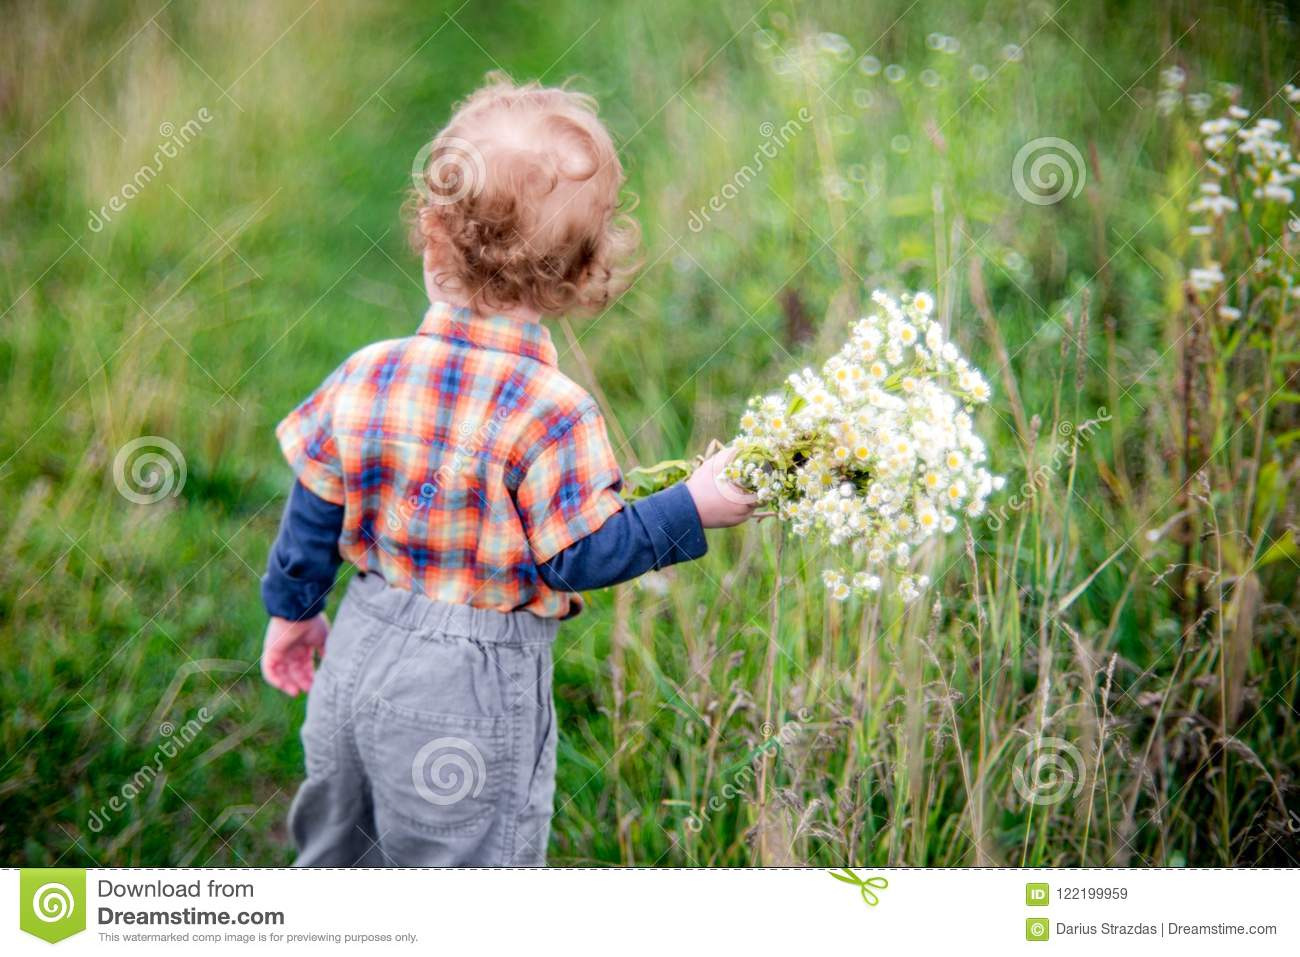 Small child boy with flowers